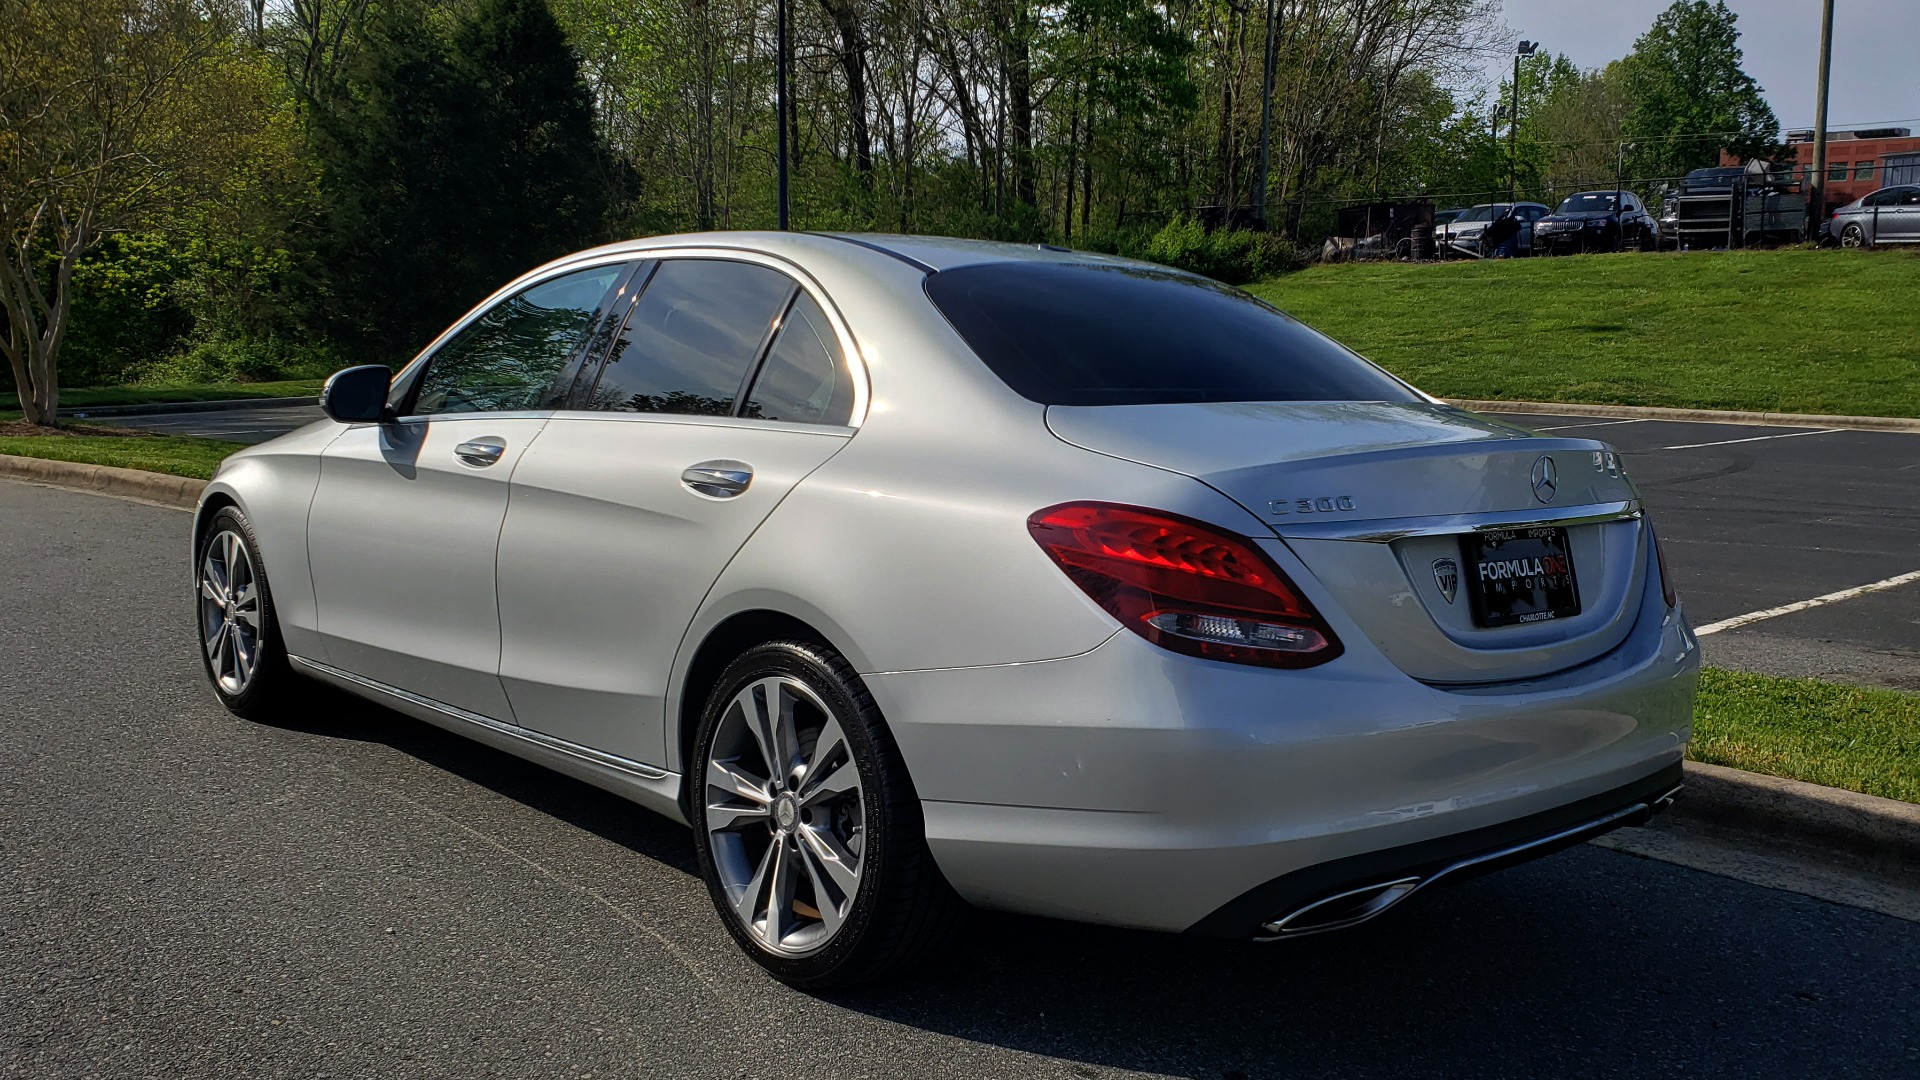 Used 2016 Mercedes-Benz C-CLASS C 300 PREMIUM / NAV / SNRF/ HTD STS / REARVIEW / BSM for sale Sold at Formula Imports in Charlotte NC 28227 3